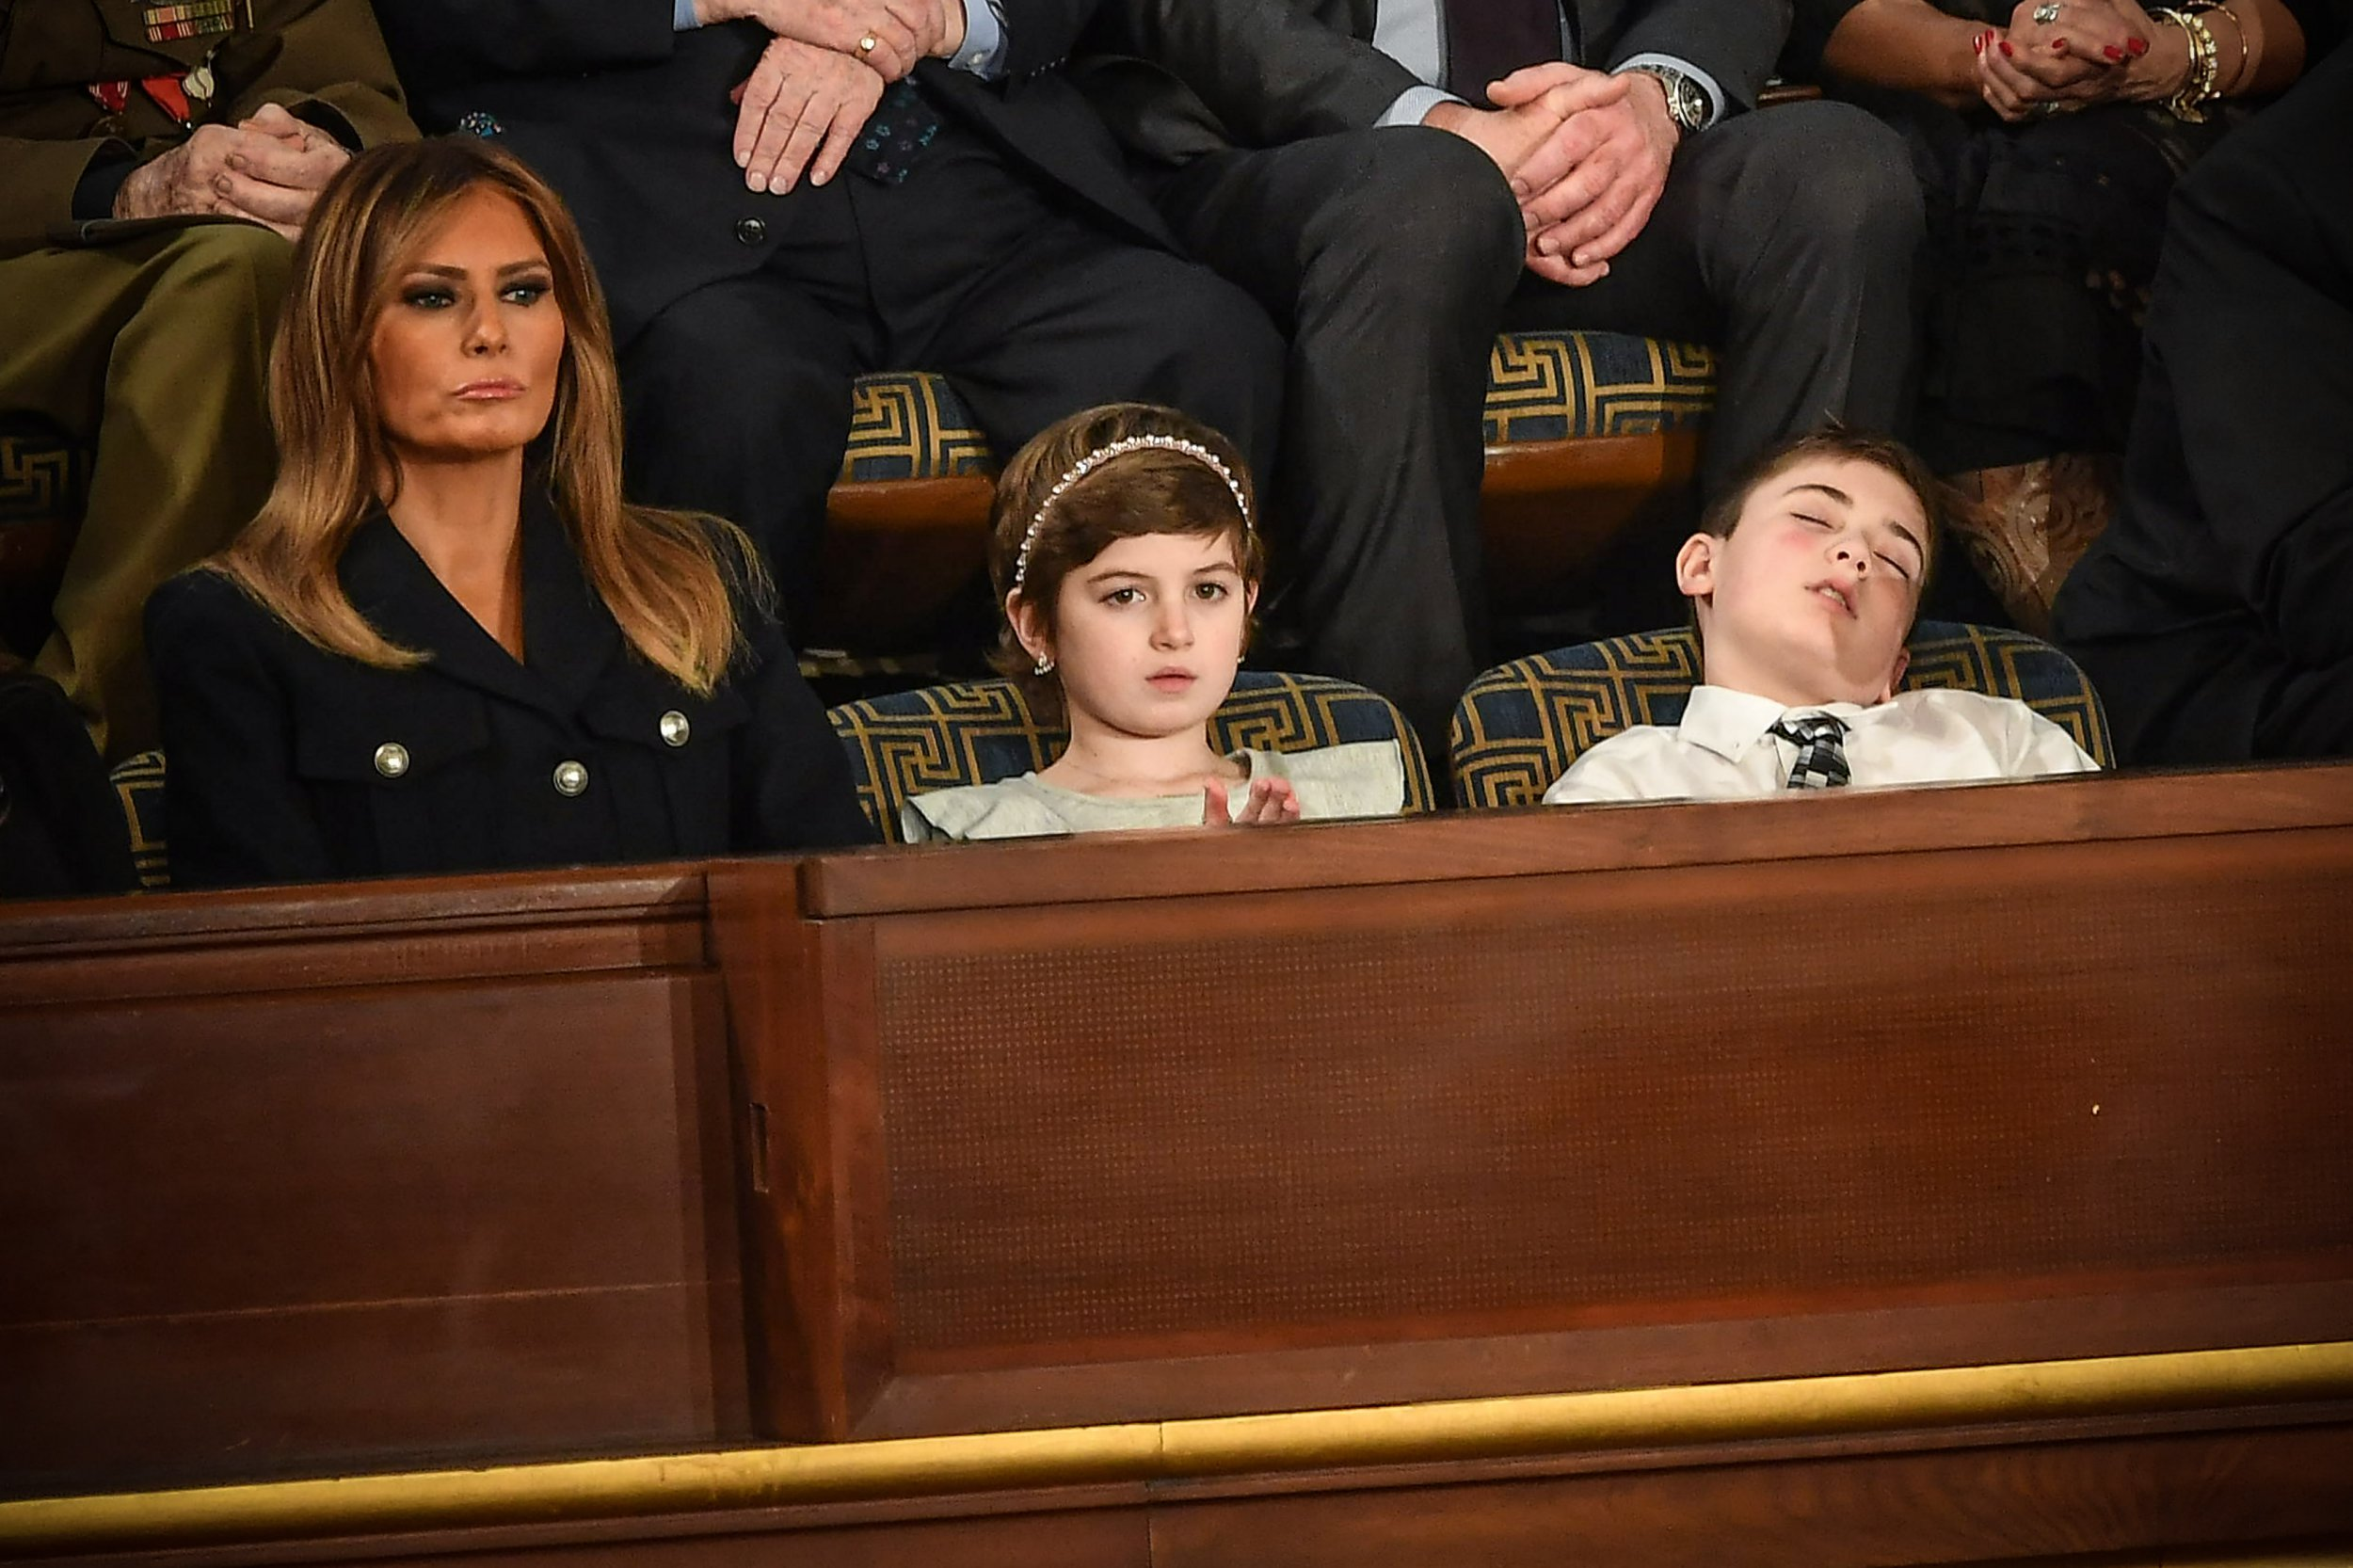 US First lady Melania Trump (L) with Grace Eline and Joshua Trump, special guests of President Donald Trump, look during of the State of the Union address at the US Capitol on February 5, 2019 in Washington, DC. (Photo by MANDEL NGAN / AFP)MANDEL NGAN/AFP/Getty Images